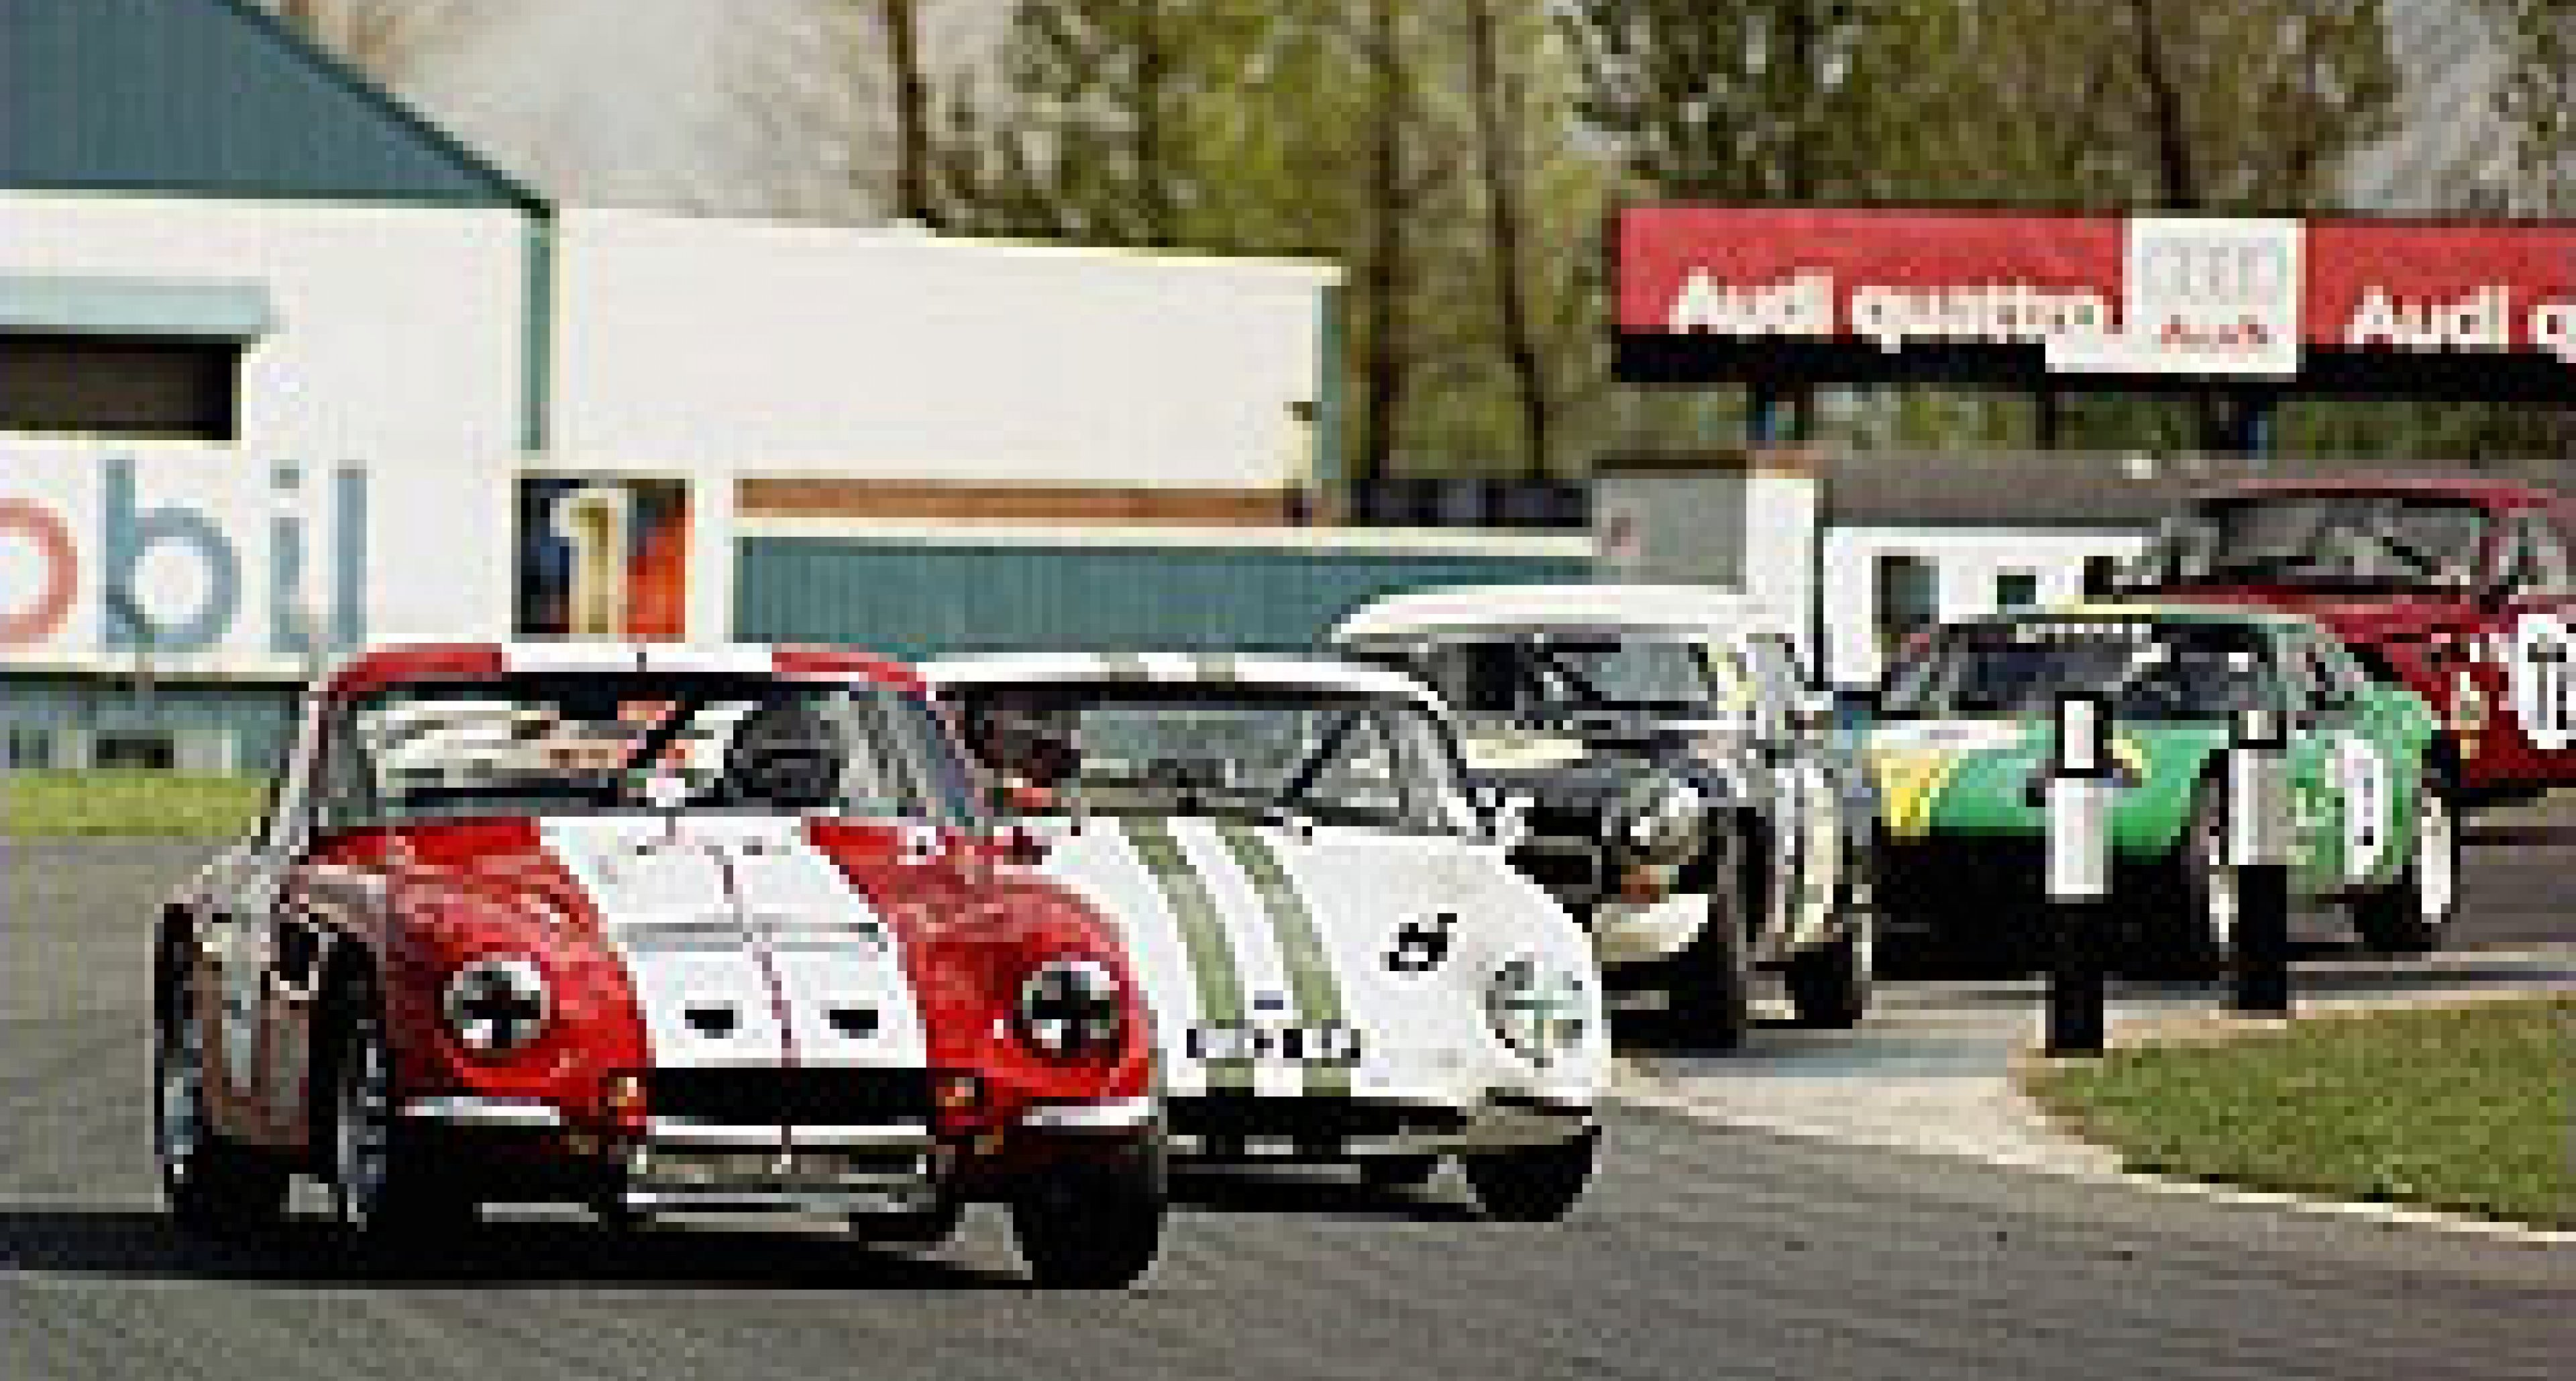 The Donington Classic  April 30th - May 1st 2006